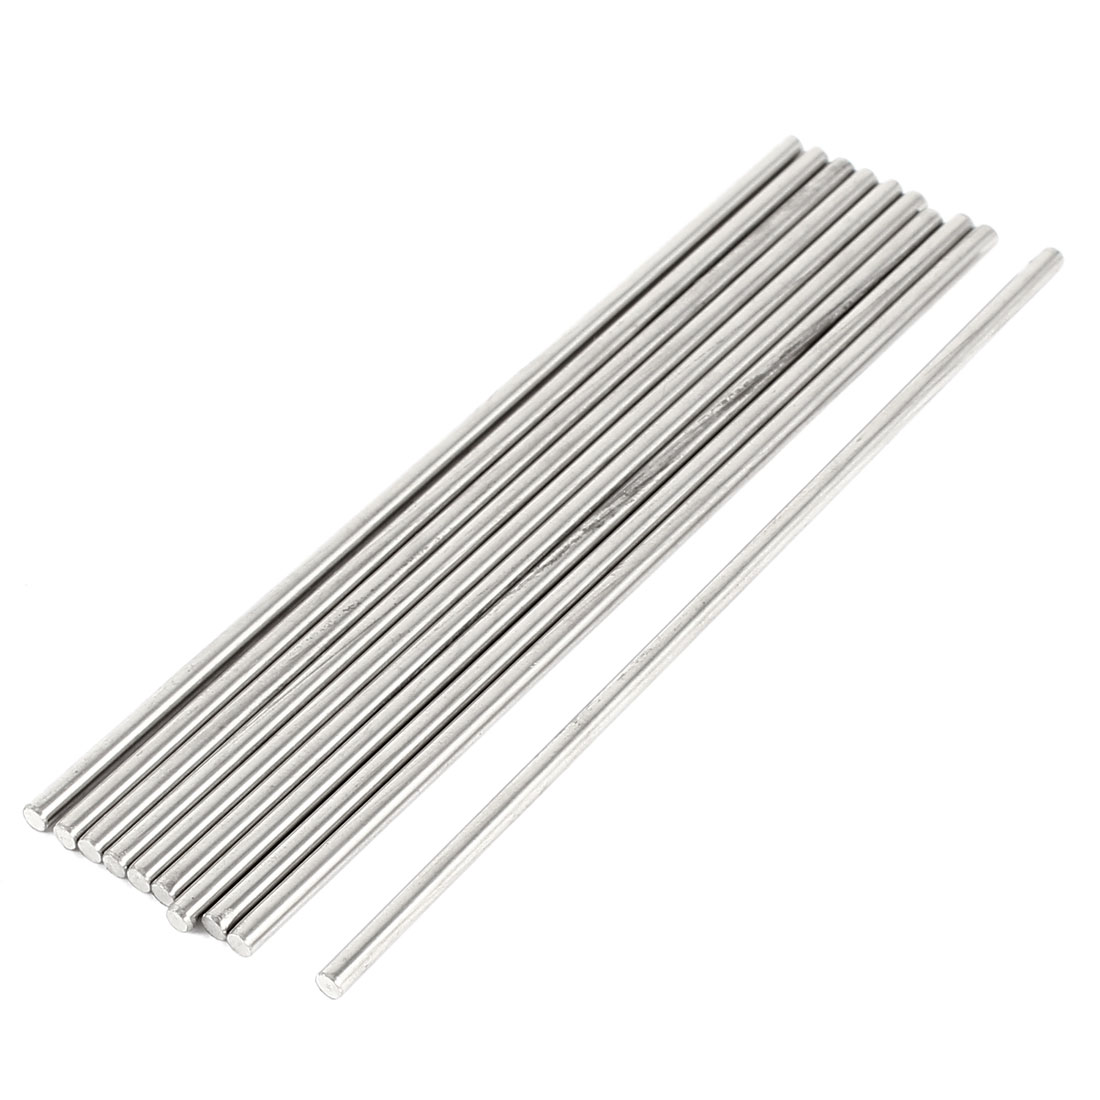 10pcs RC Aircraft Toys Replacement Stainless Steel Round Bar 100x2.5mm